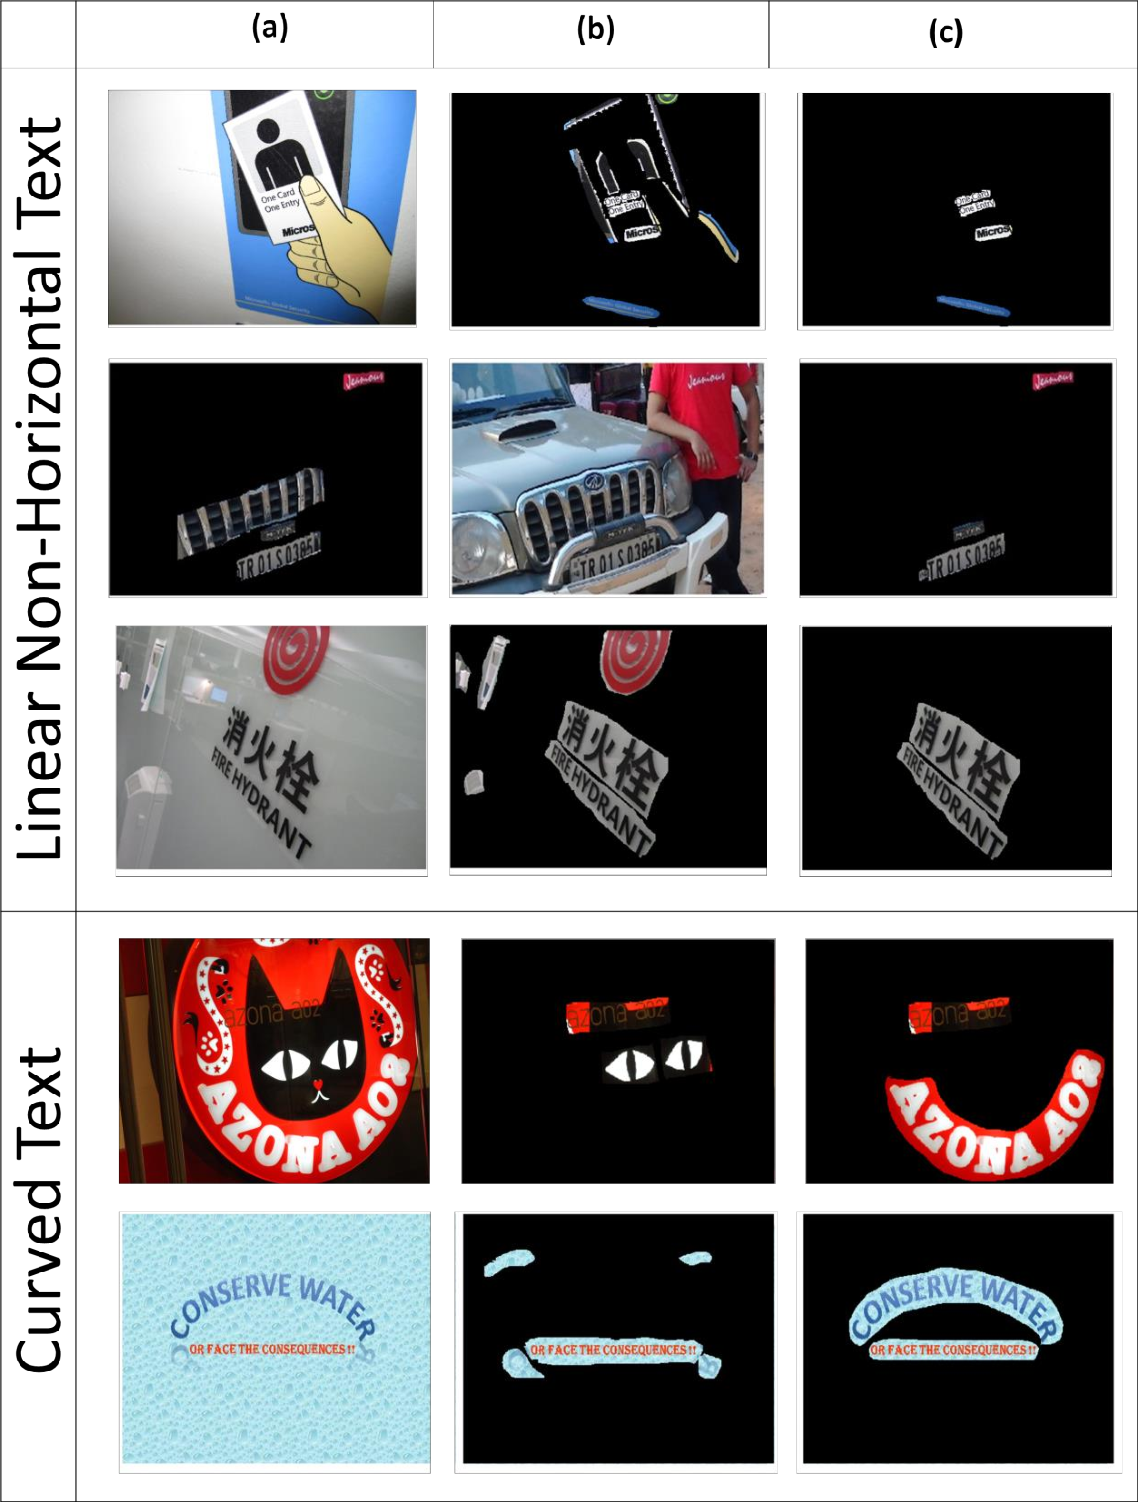 Figure 3 for Multi-Oriented Text Detection and Verification in Video Frames and Scene Images